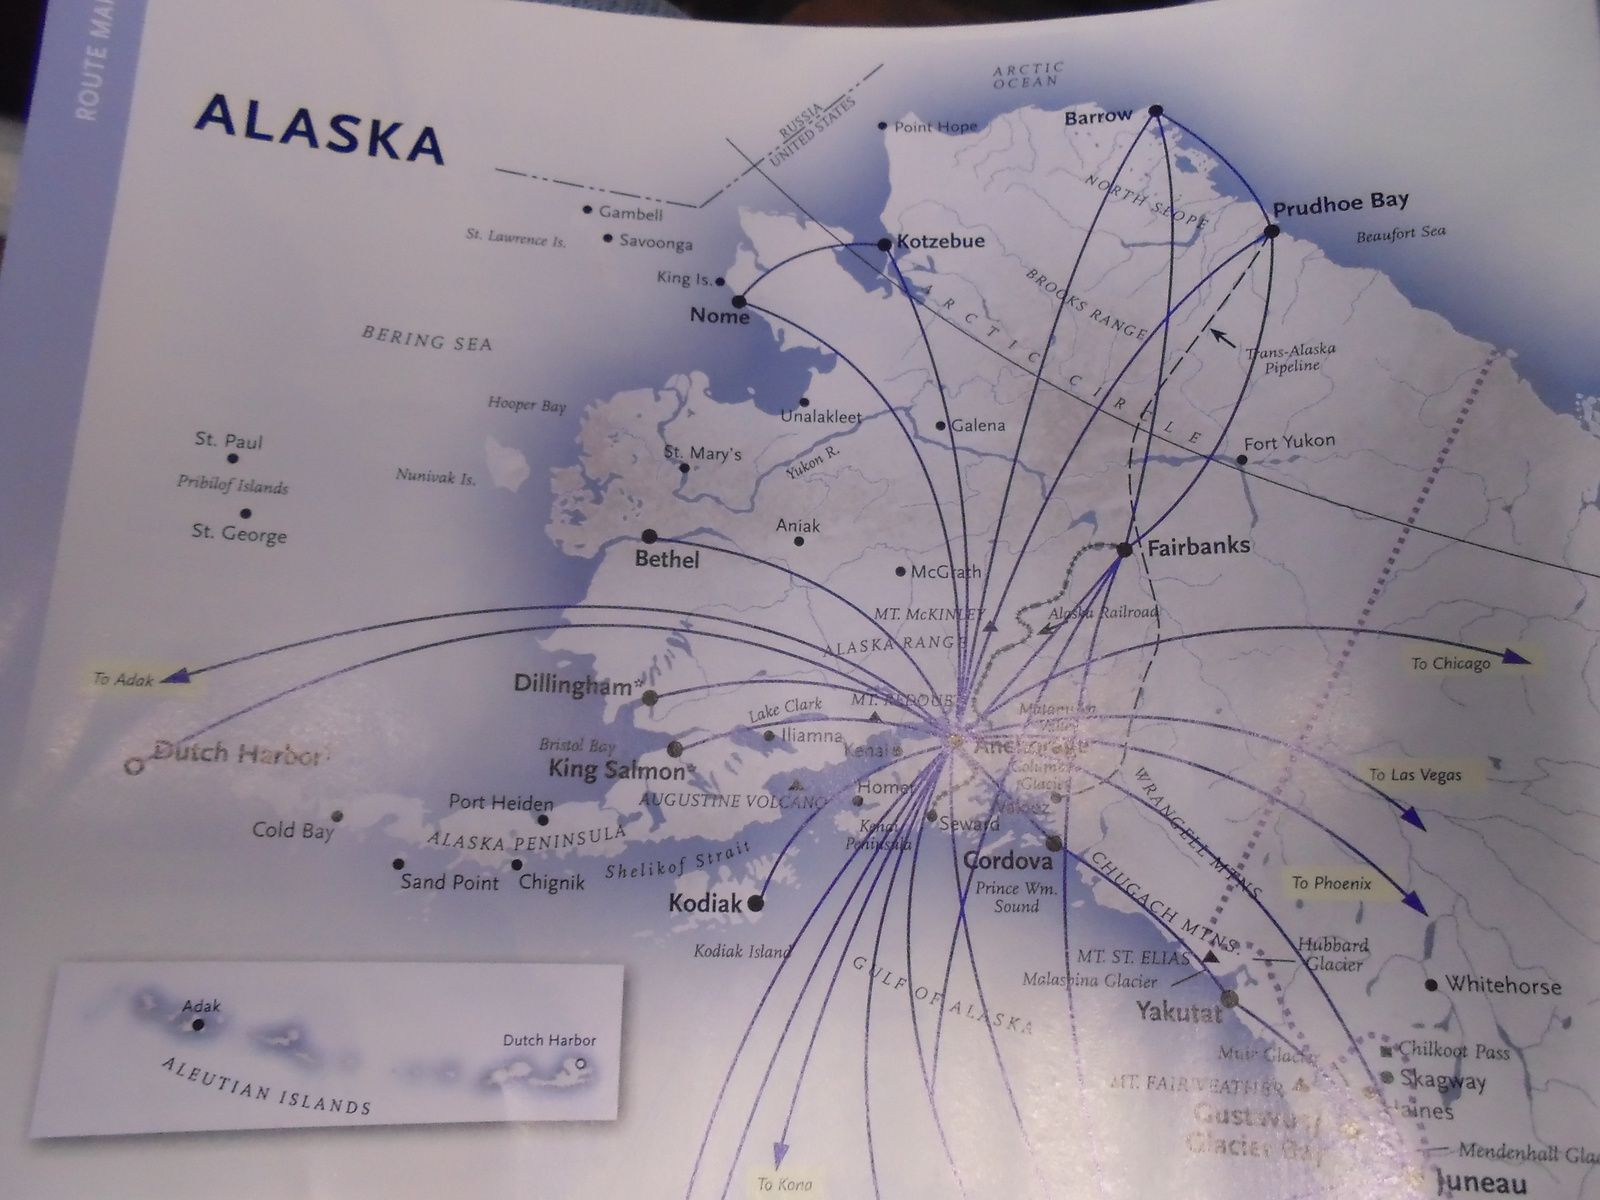 alaska airlines fait partie de skyteam, comme air france klm